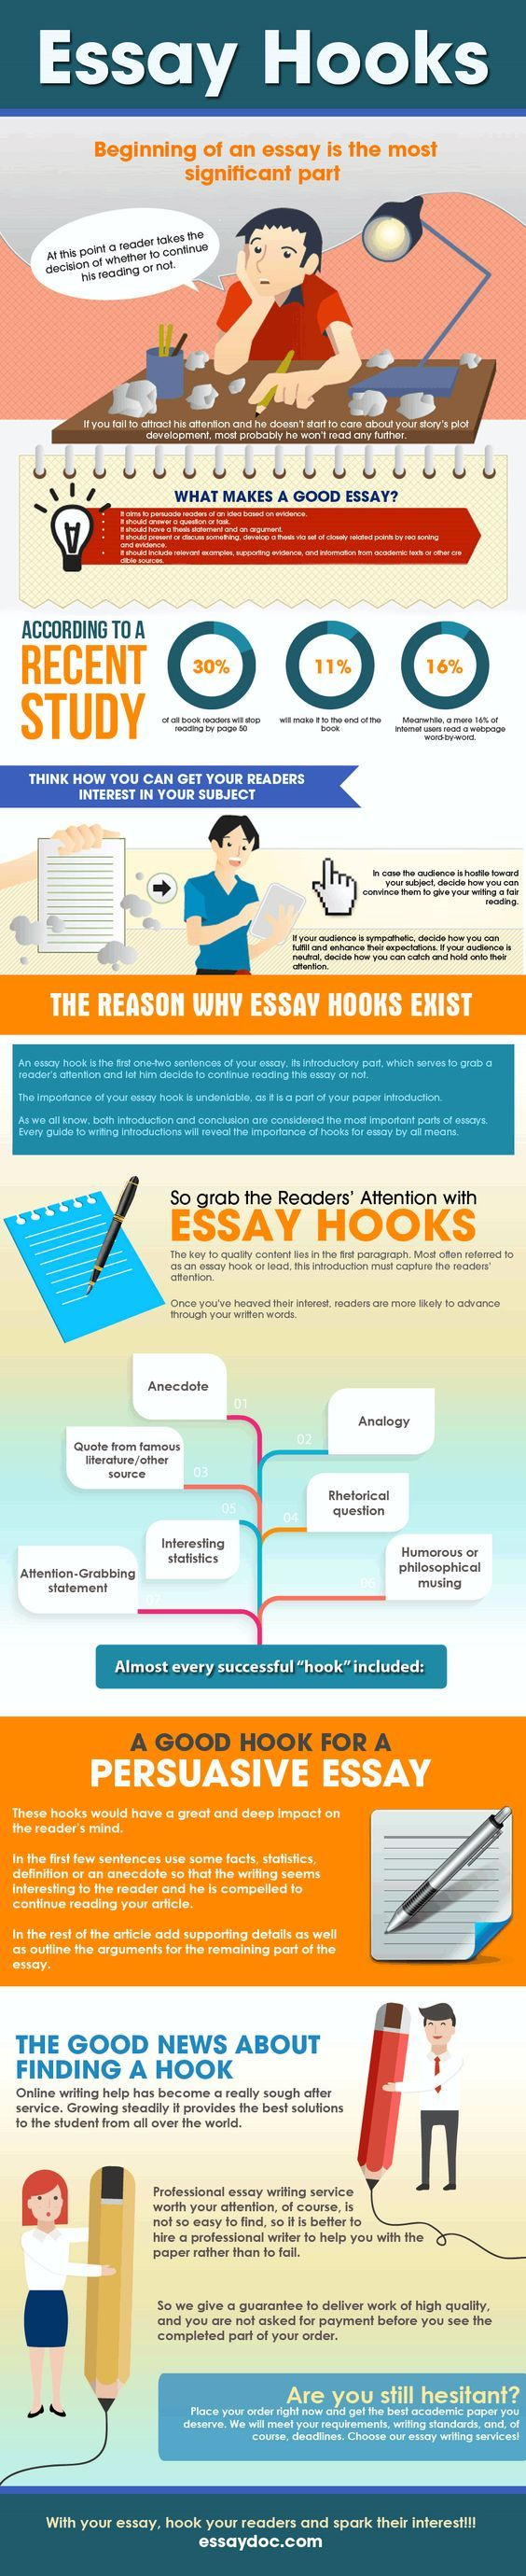 best cause and effect essay ideas essay writing nice how to write a cause effect essay definition writing steps